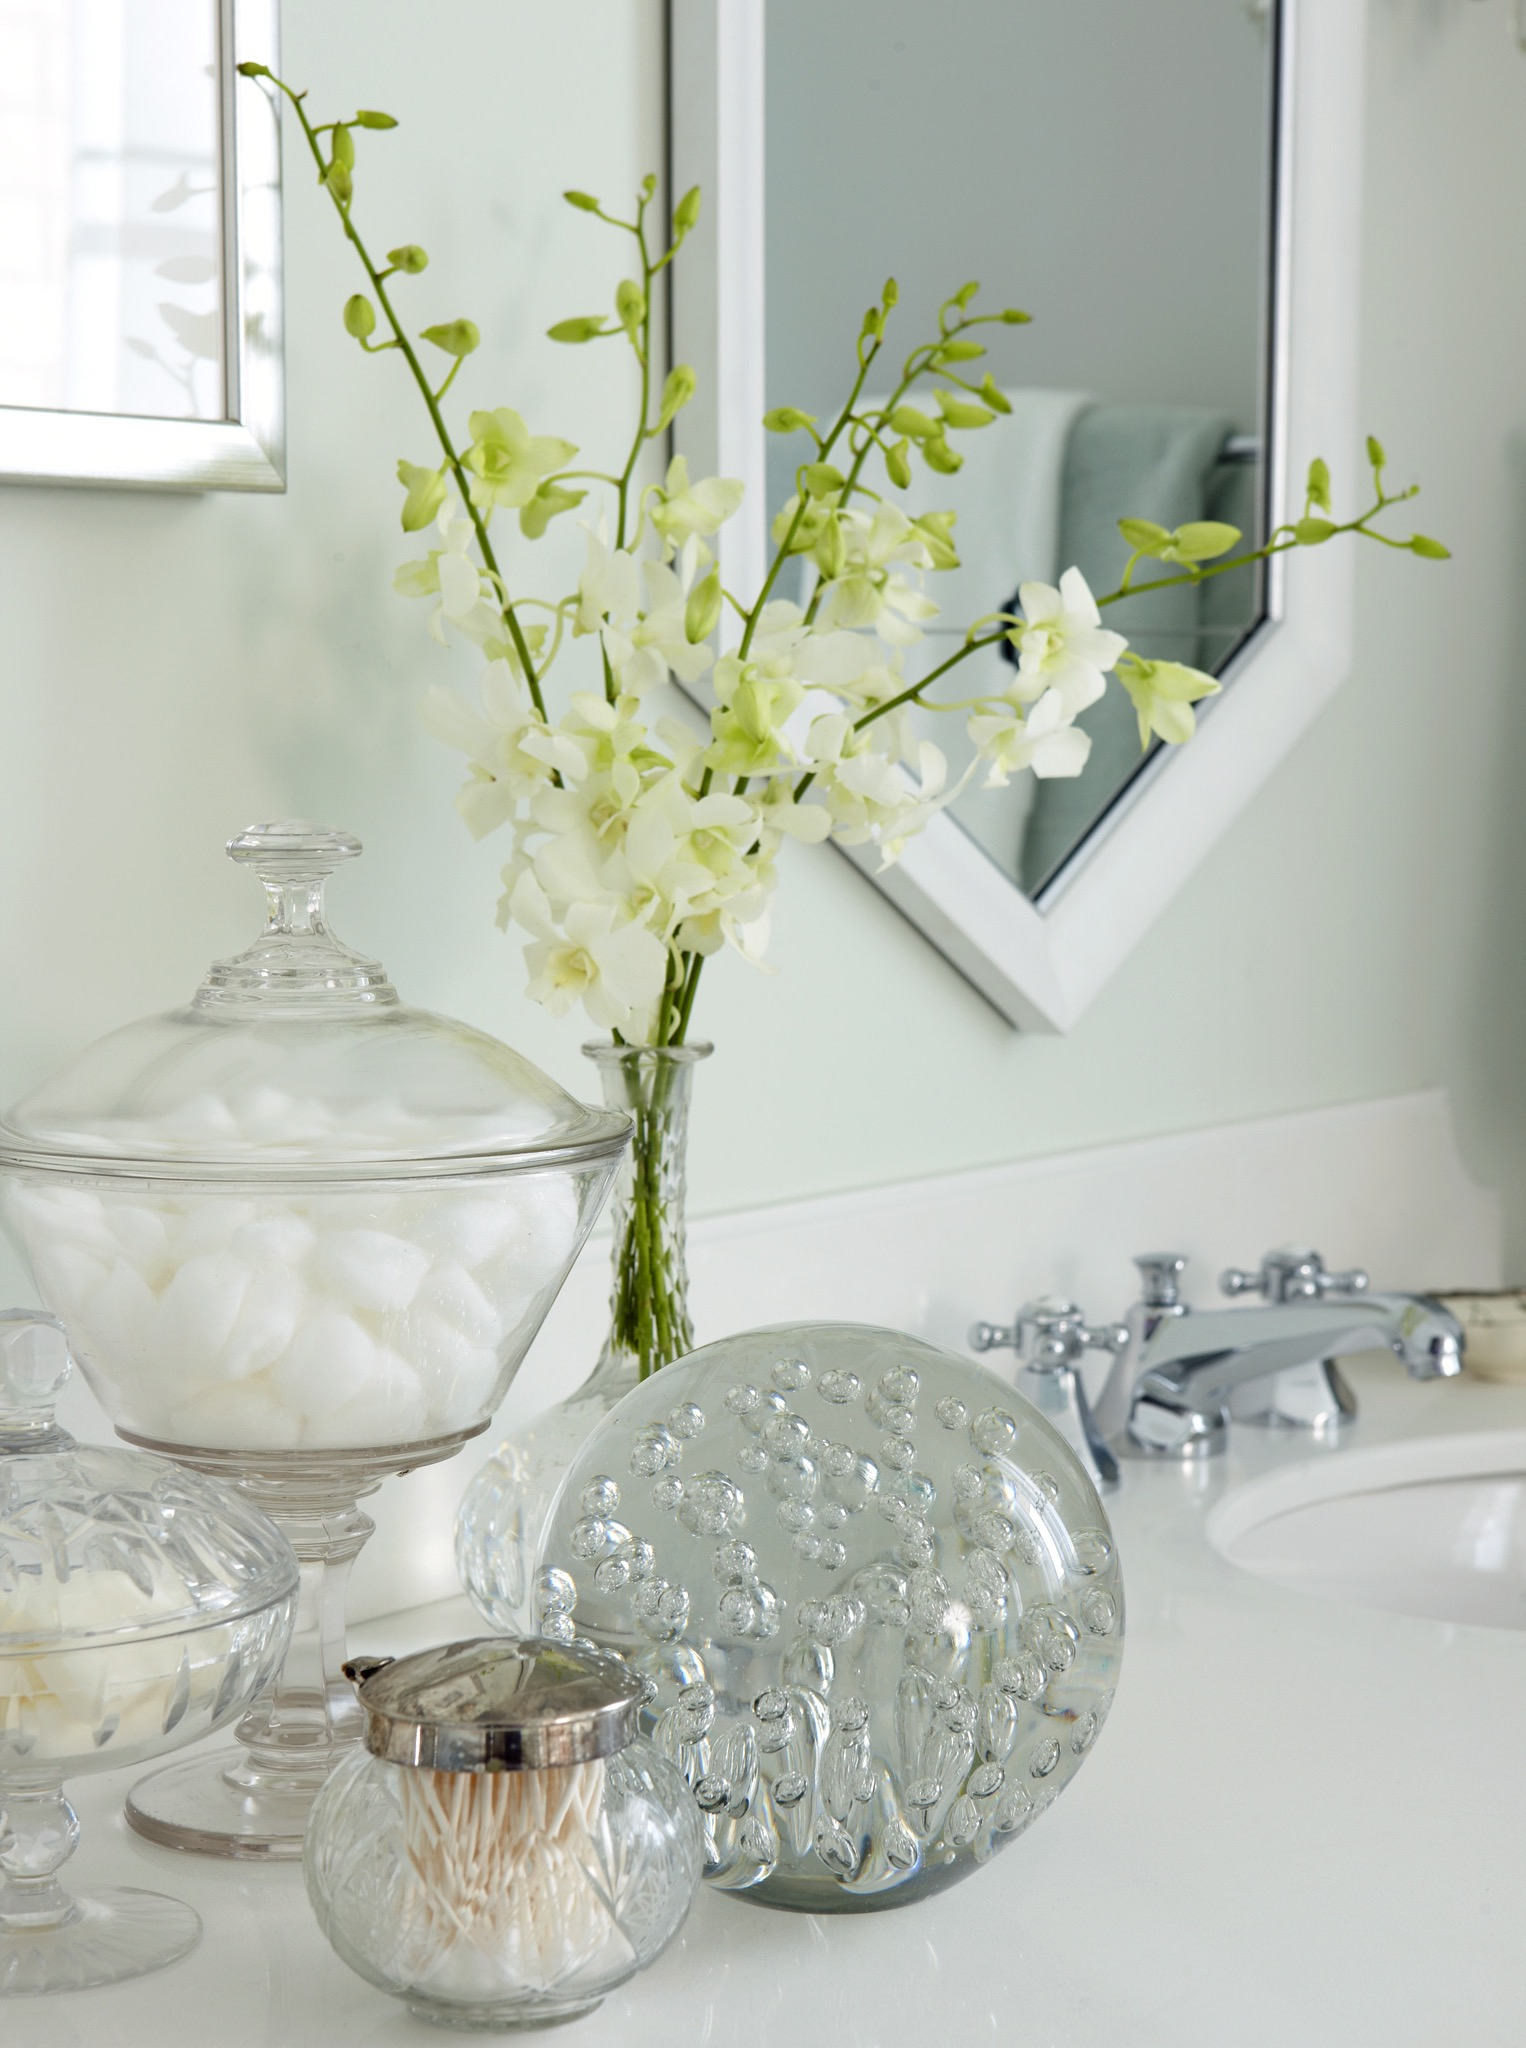 Decorative Glass Jars And Flowers As Modern Bathroom Accessories (Image 5 of 14)